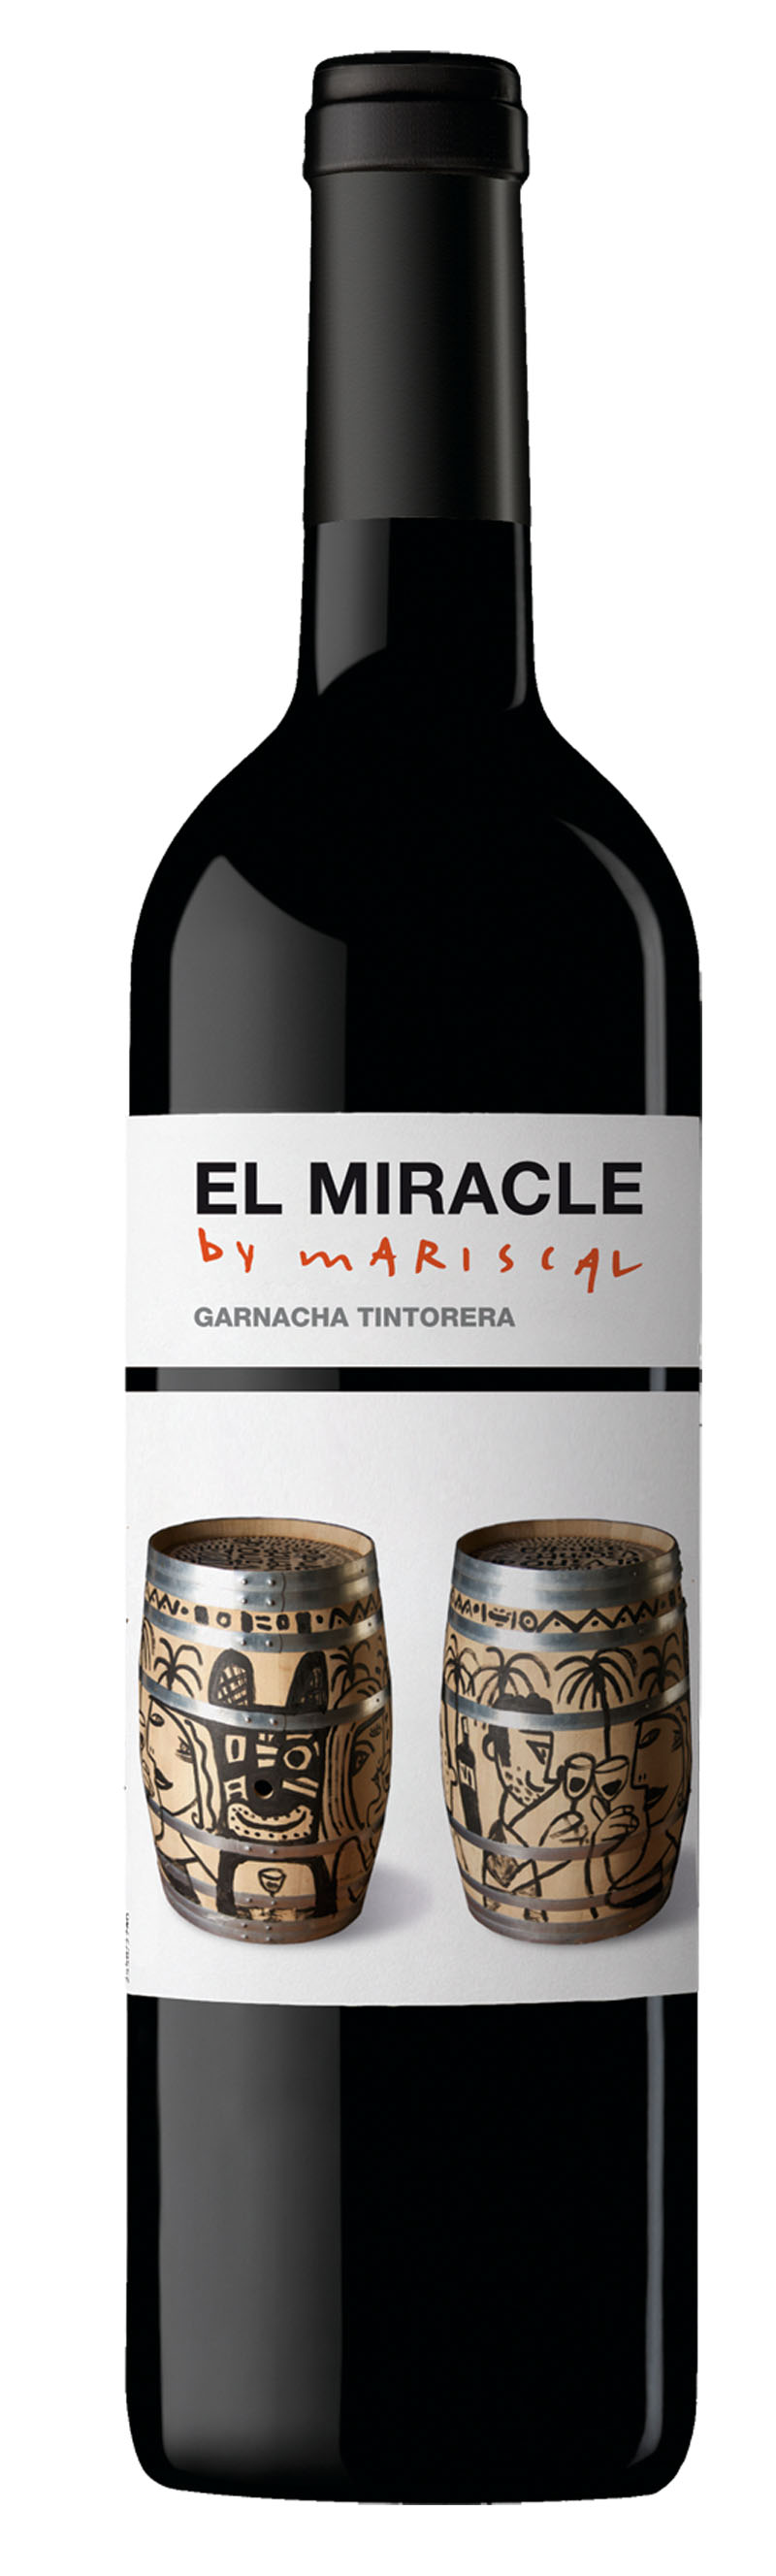 El Miracle by Mariscal copia